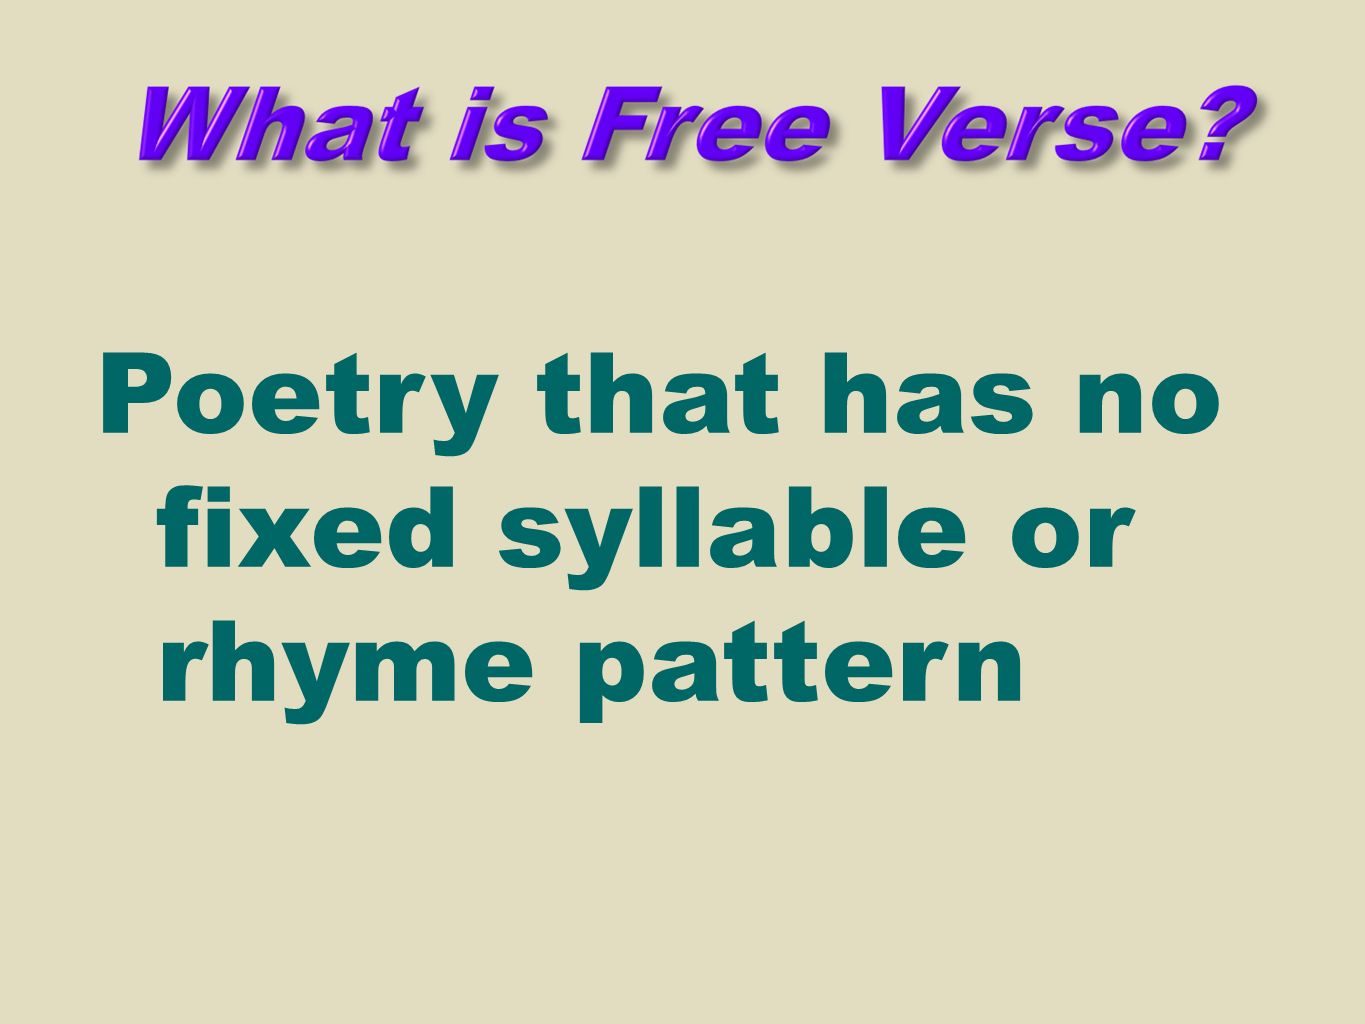 Poetry that has no fixed syllable or rhyme pattern